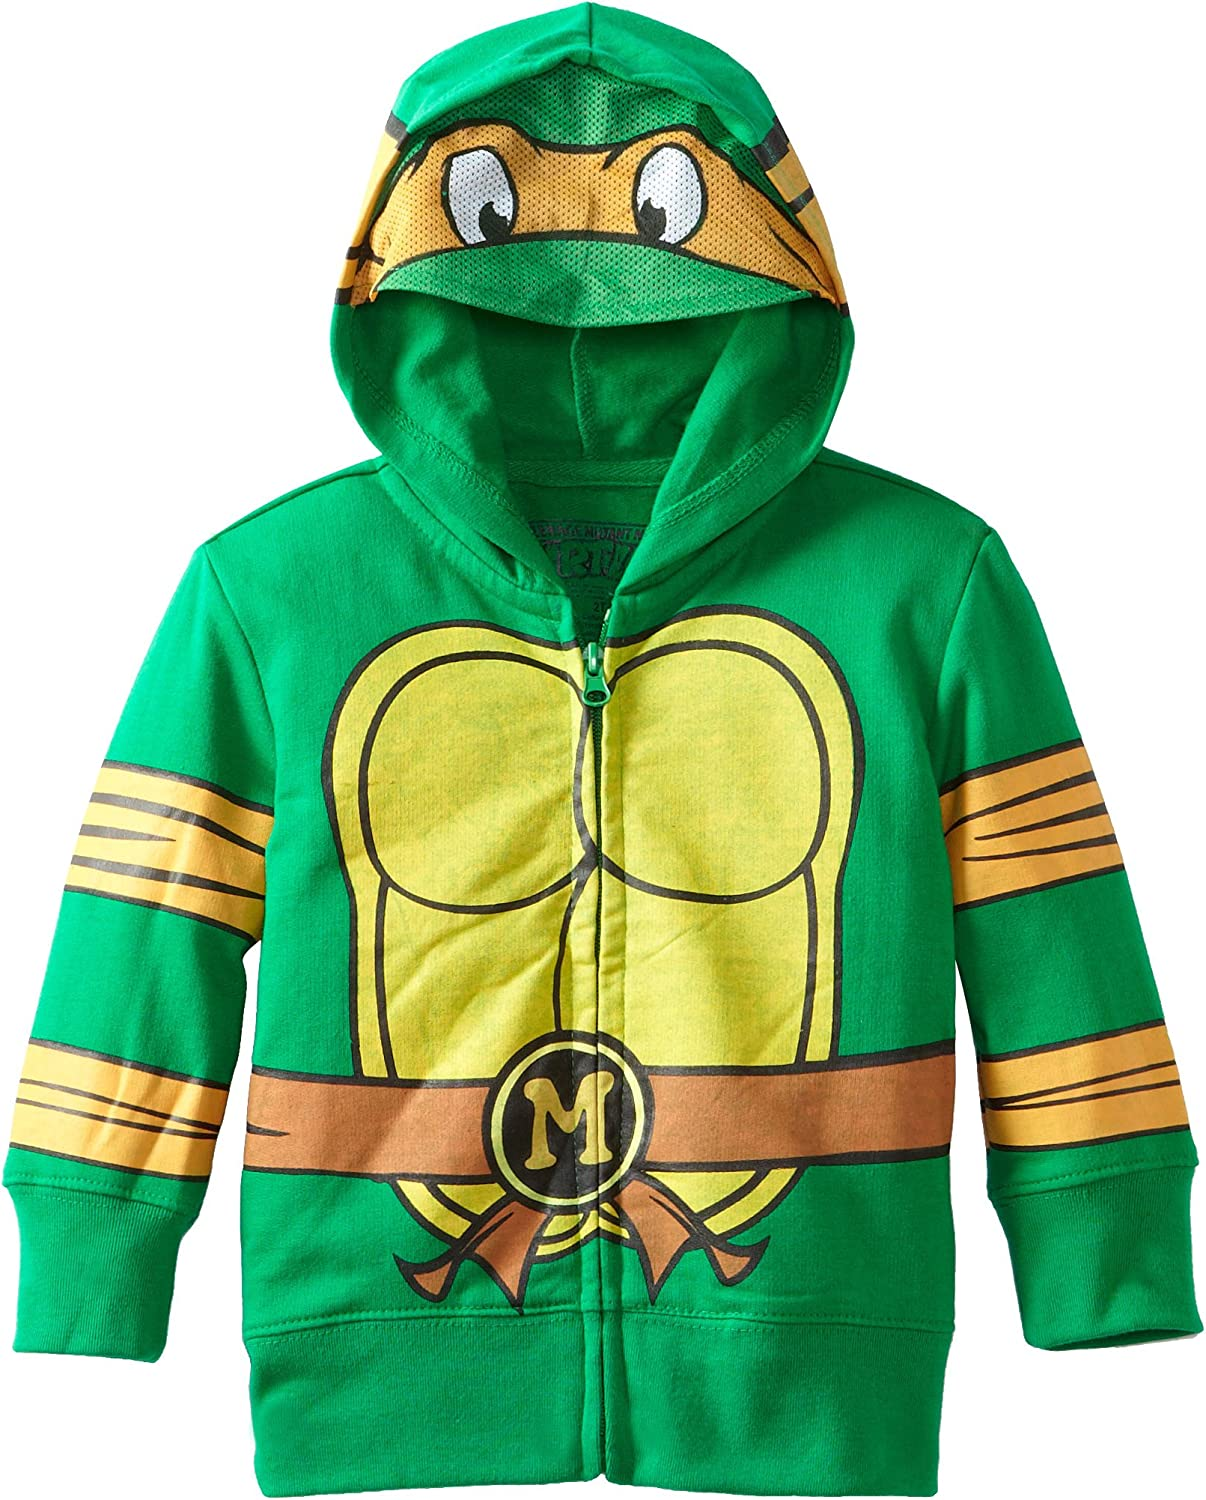 Nickelodeon Toddler Boys' Teenage Mutant Ninja Turtles Costume Hoodie, Green, 4T